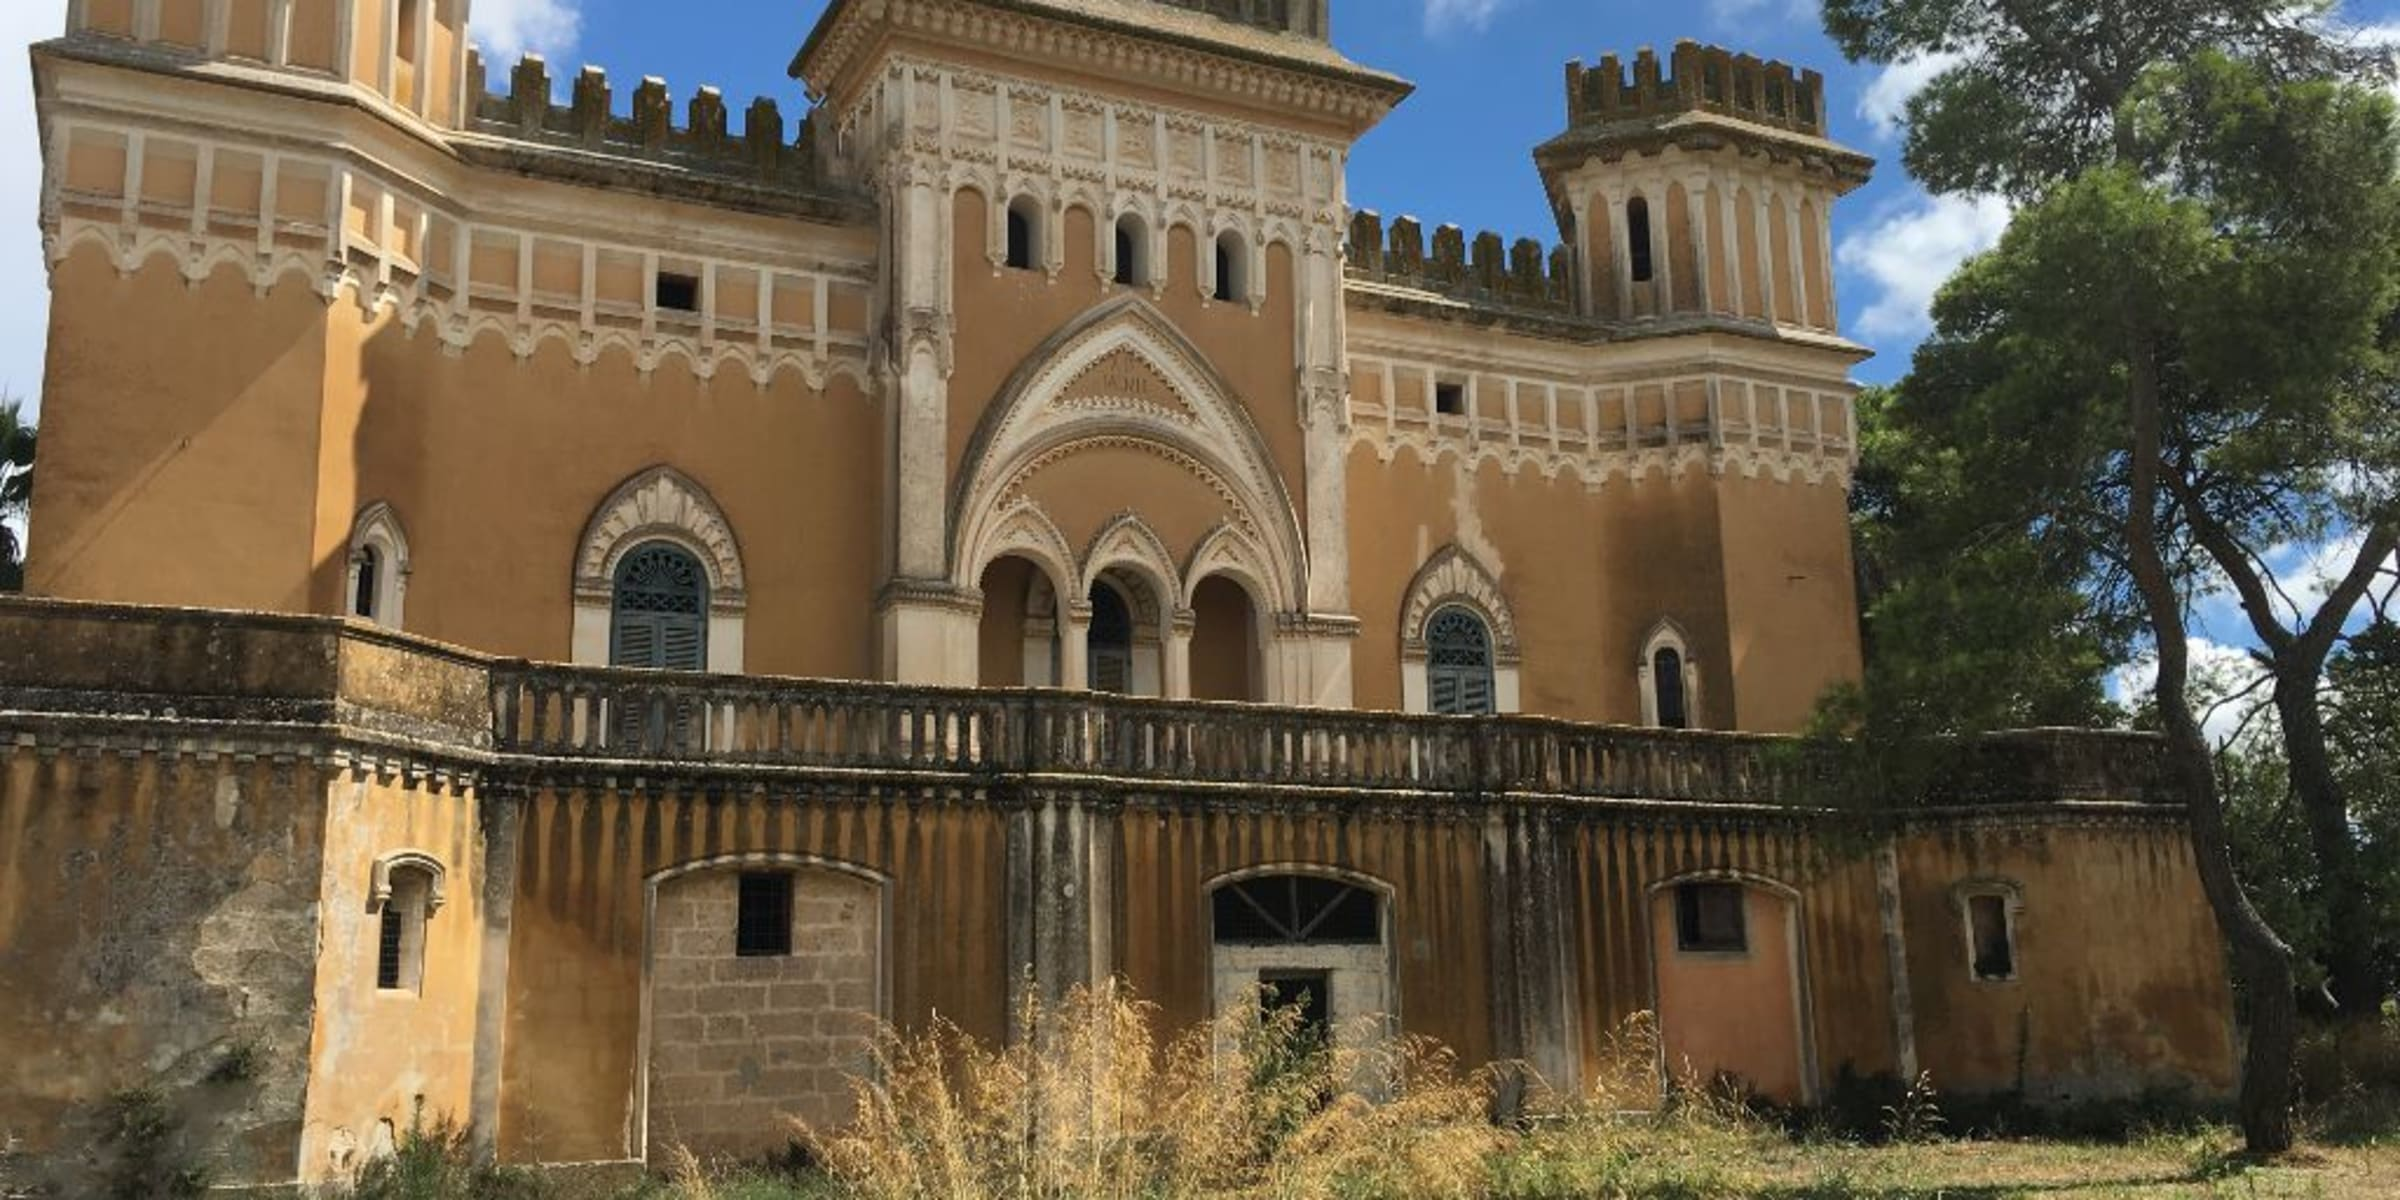 Best Kept Secret In Italy! …  Life In A Private And Secure Grand Italian Castle! - Front Of Castle